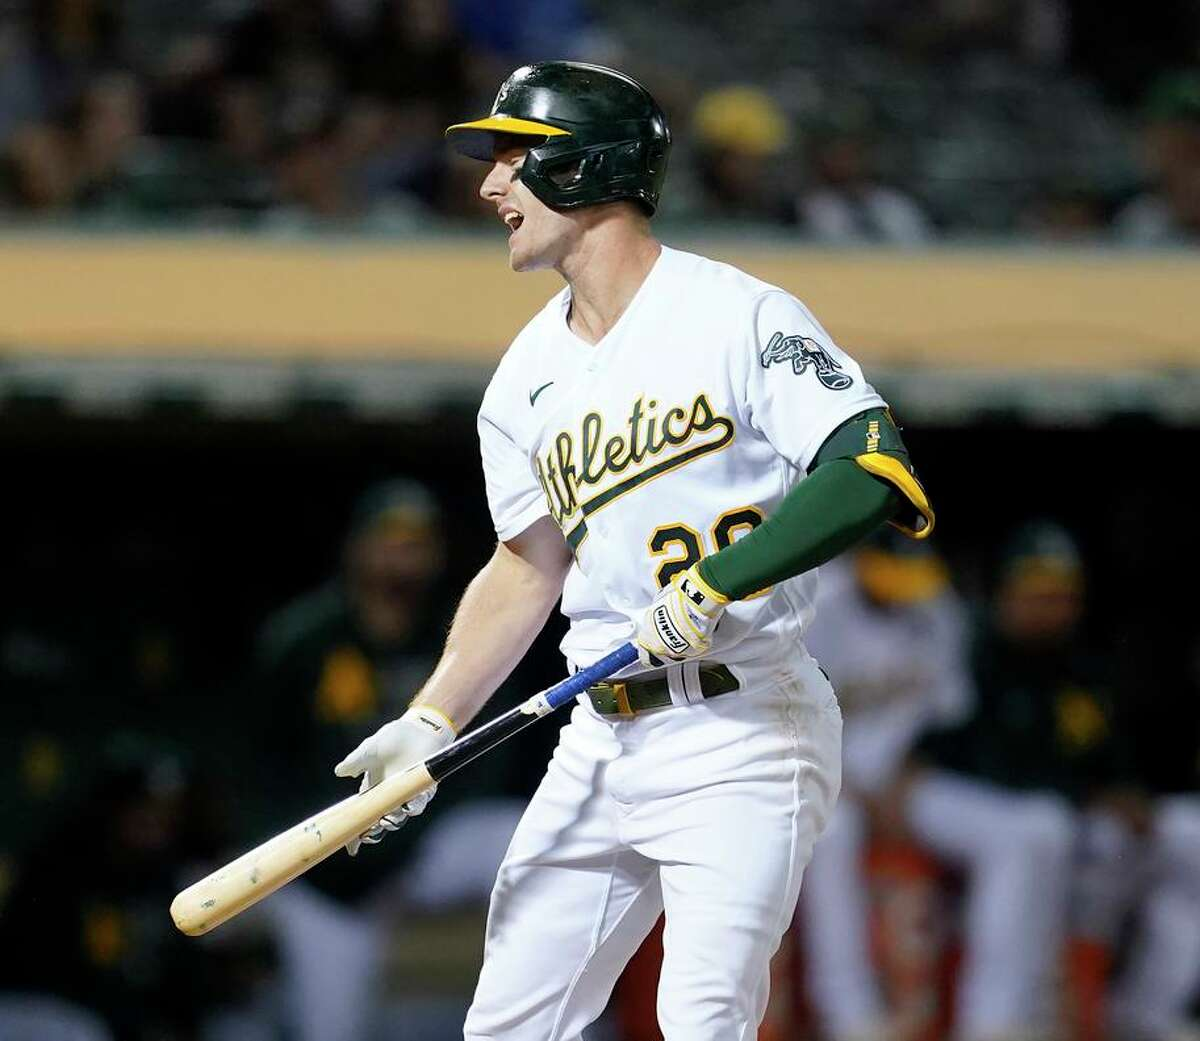 The A's Mark Canha reacts after striking out against the Seattle Mariners during the seventh inning at the Coliseum.